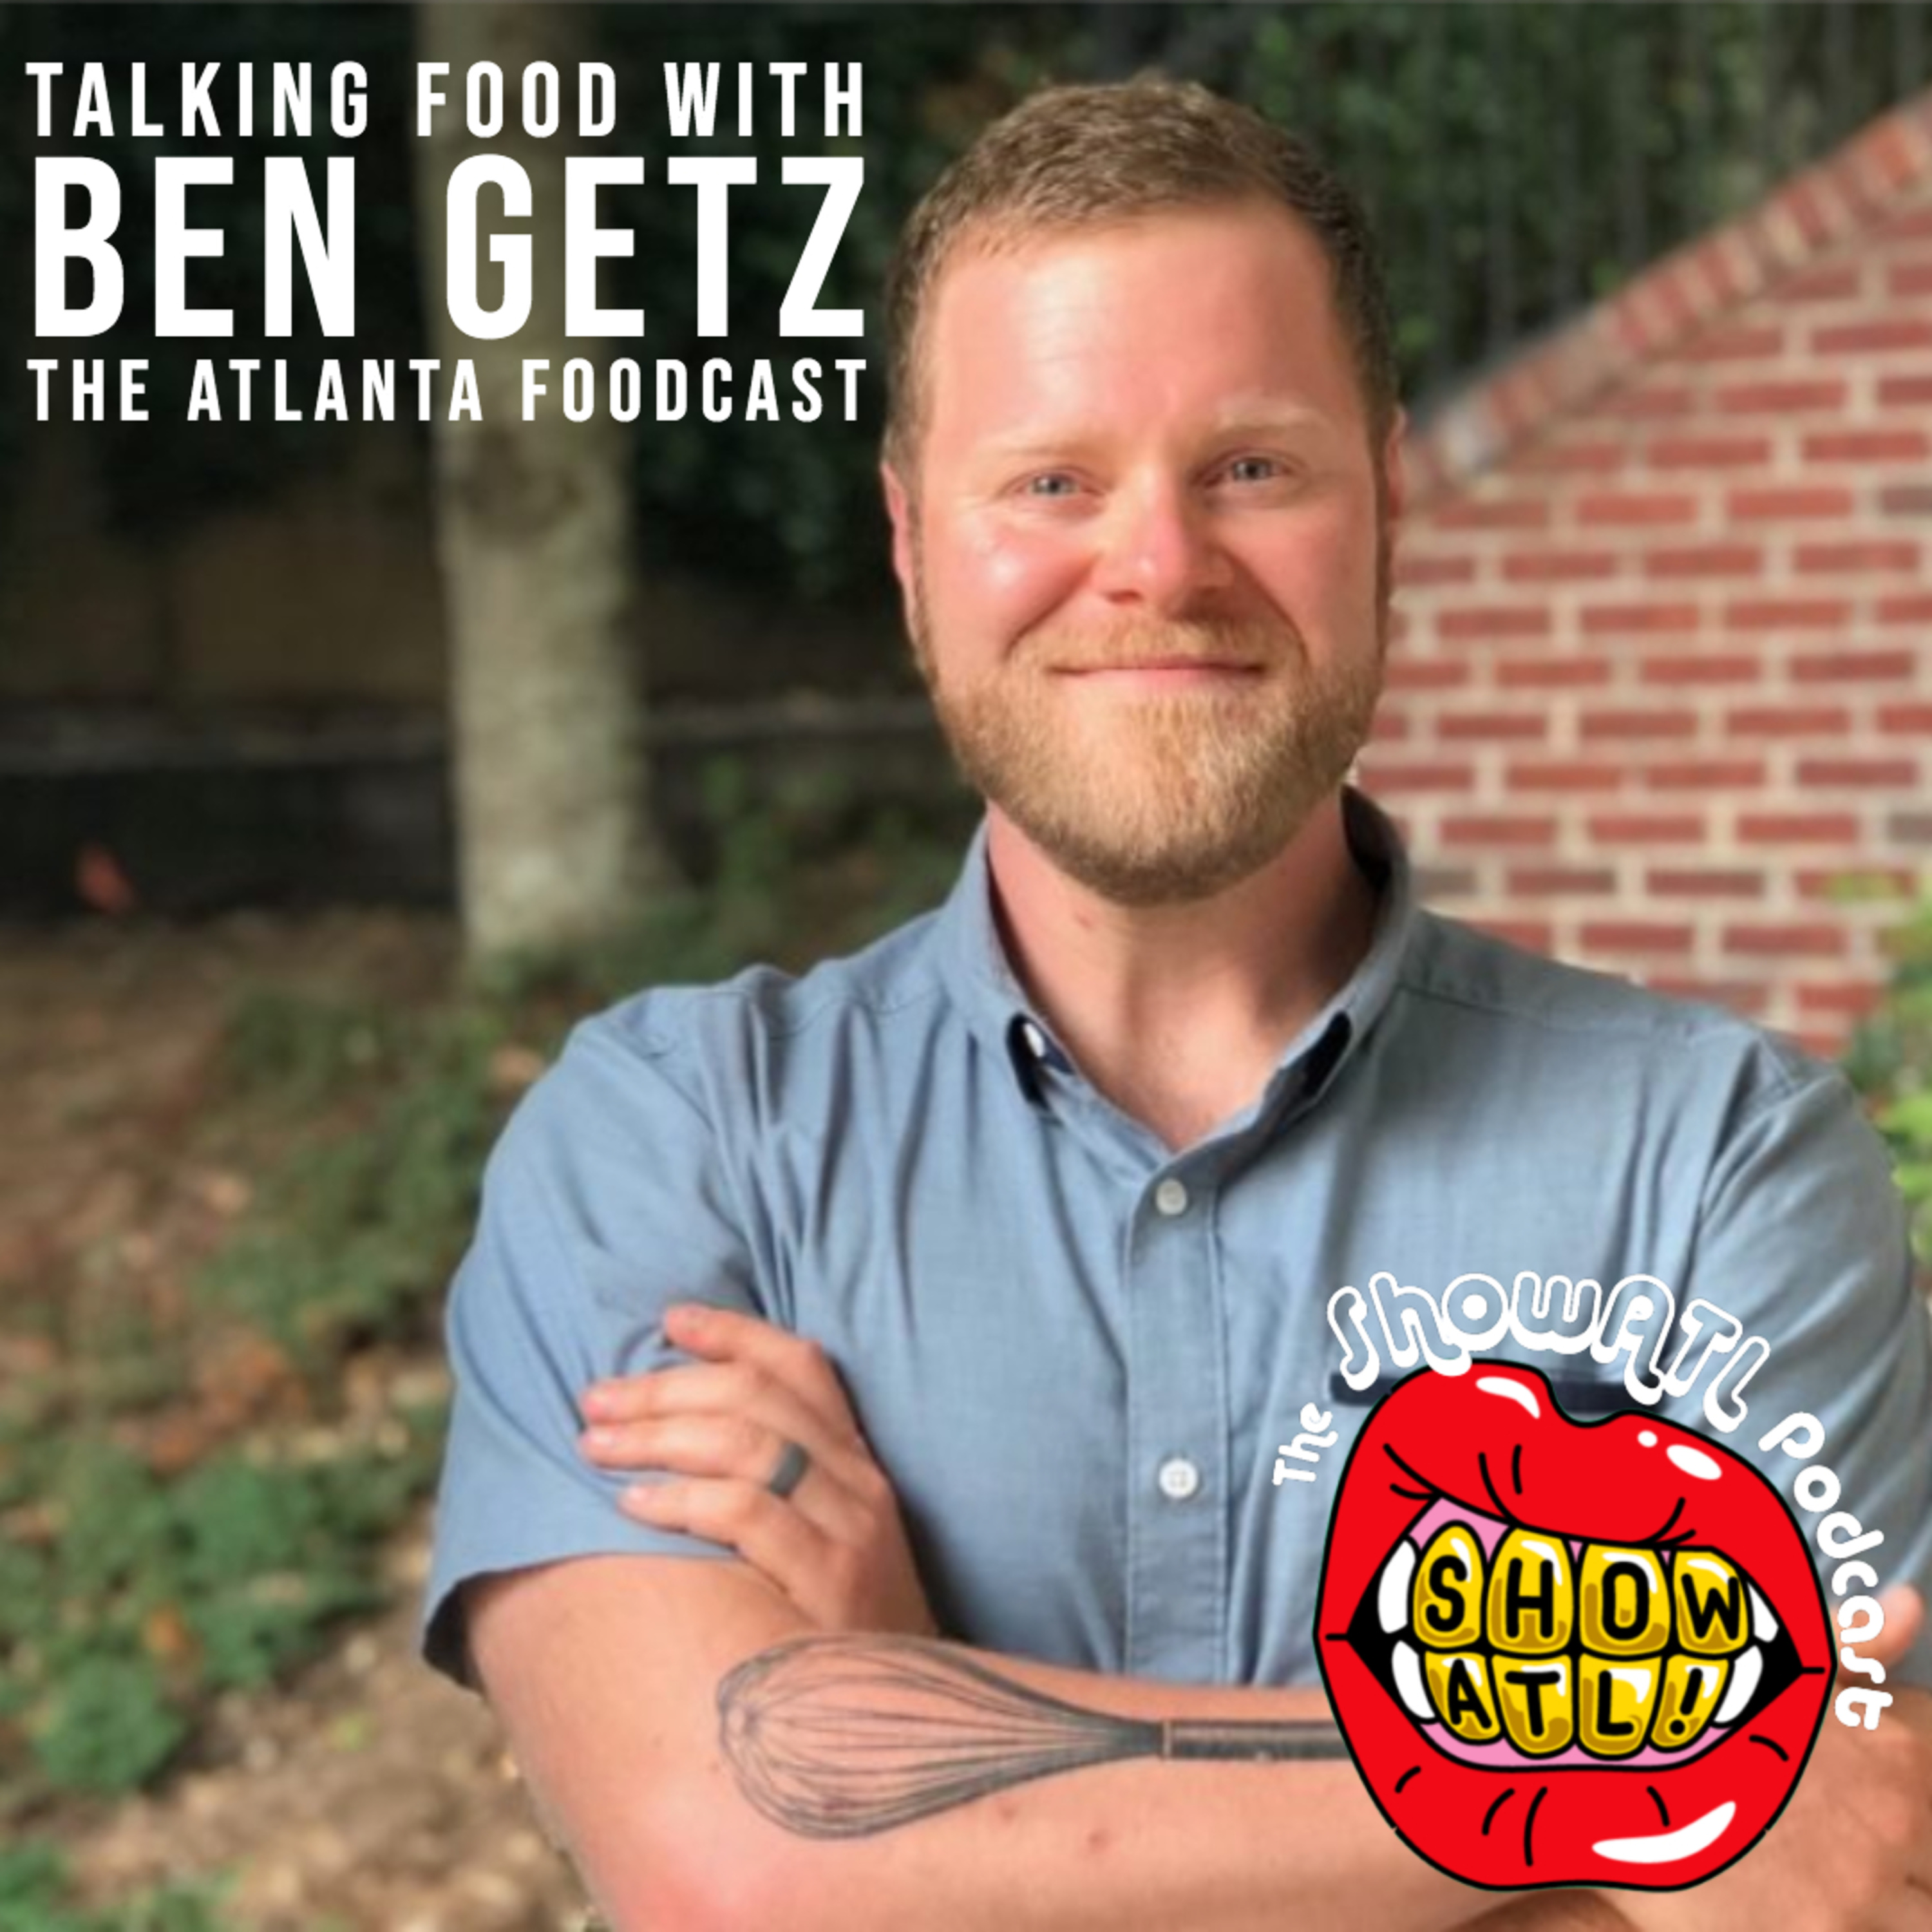 Ben Getz of the Atlanta Foodcast: Episode 24